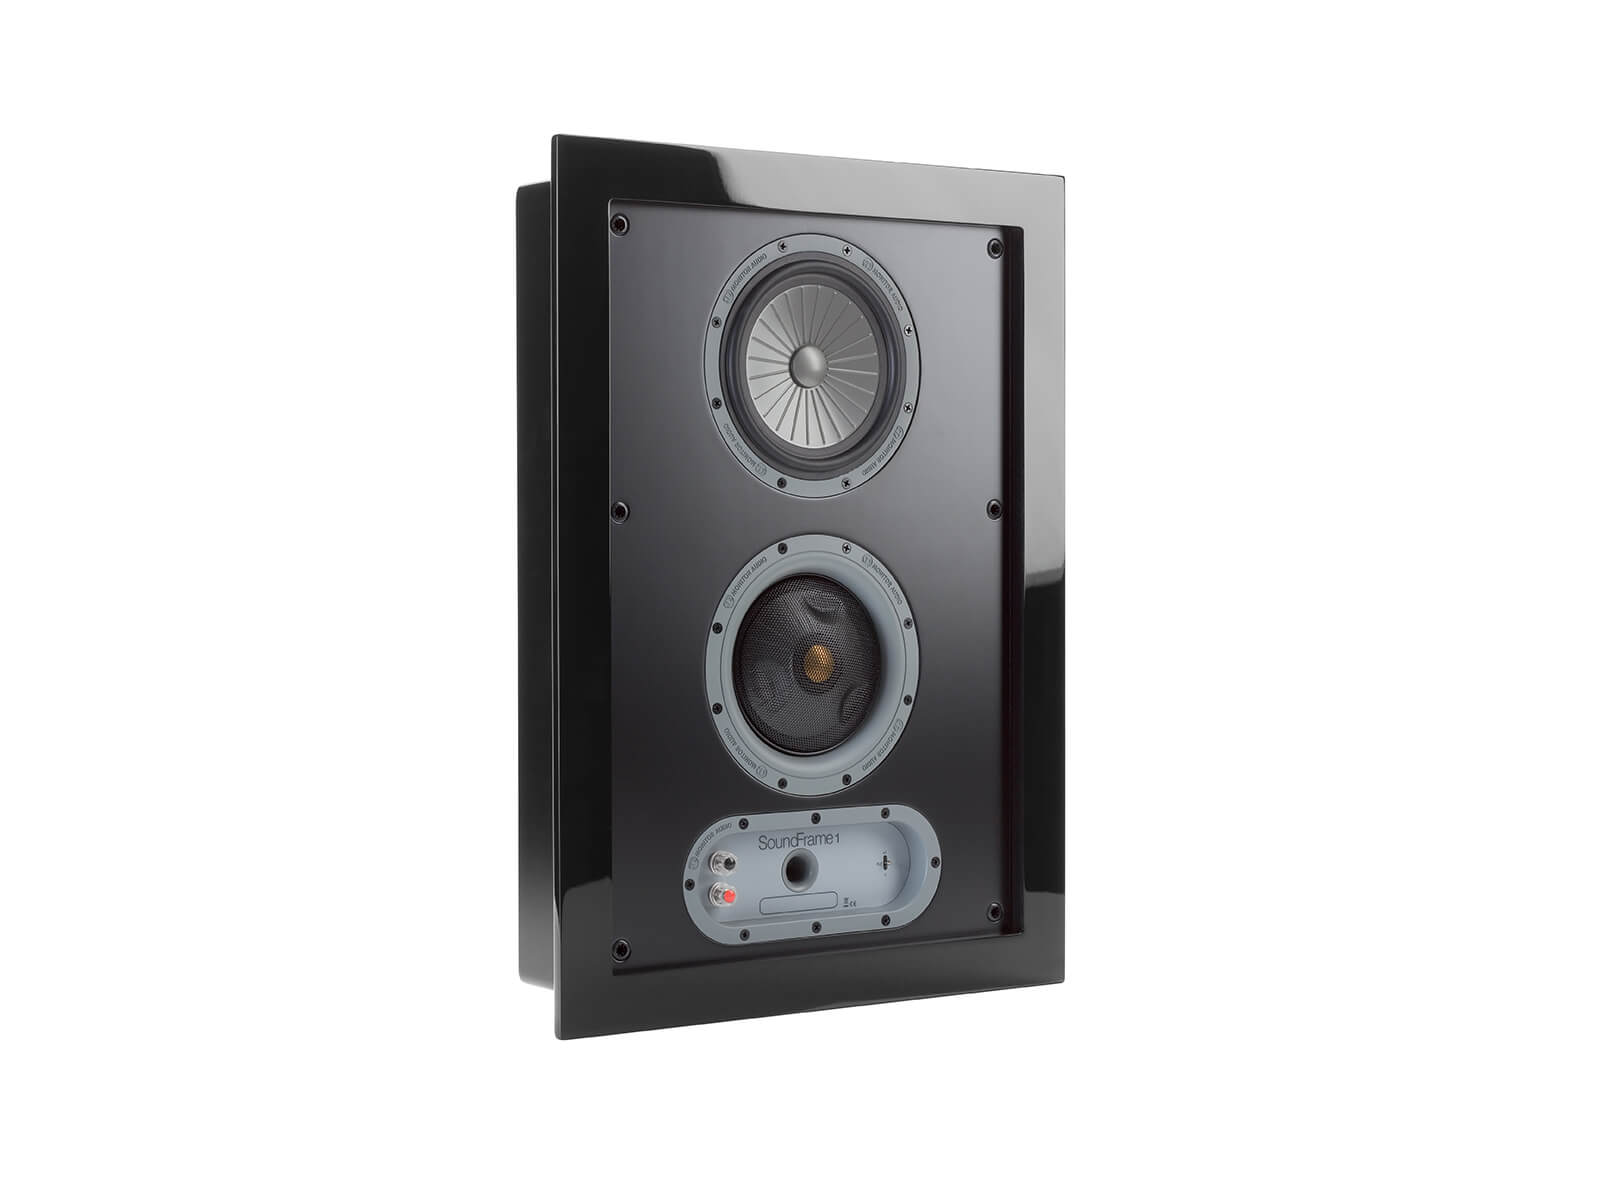 SoundFrame SF1, on-wall speakers, grille-less, with a high gloss black lacquer finish.